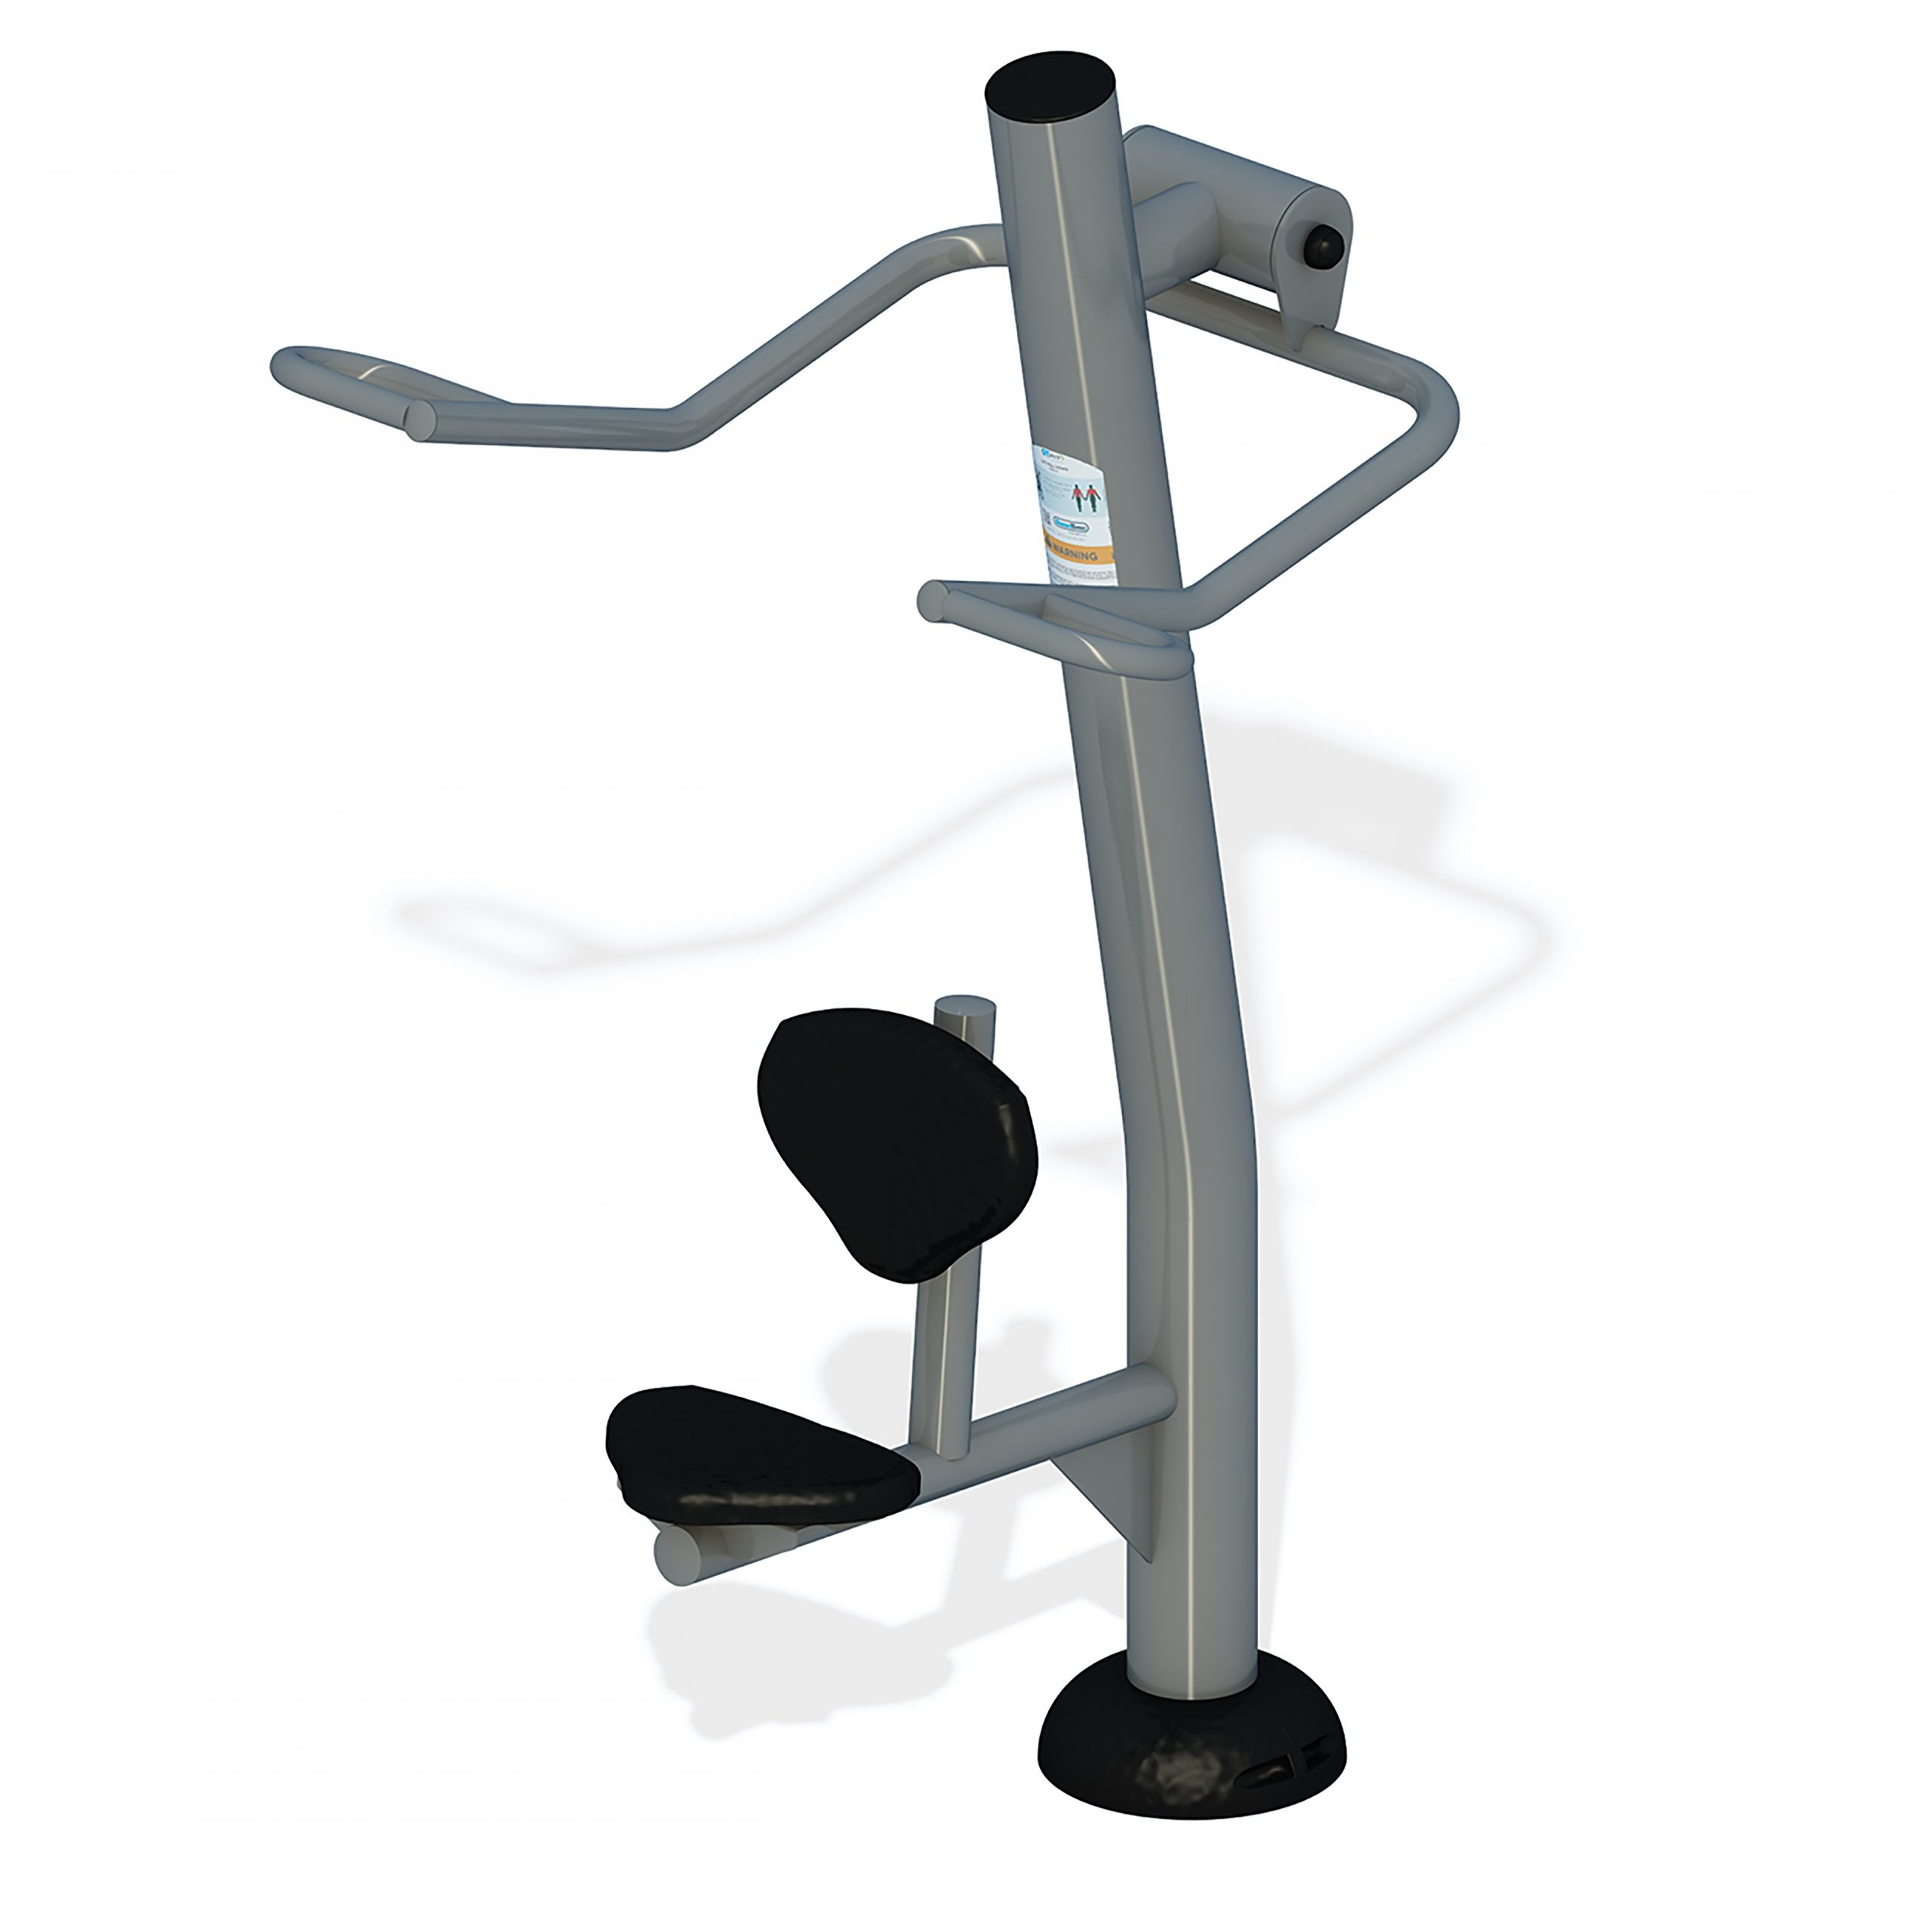 Lat Pull Down Image